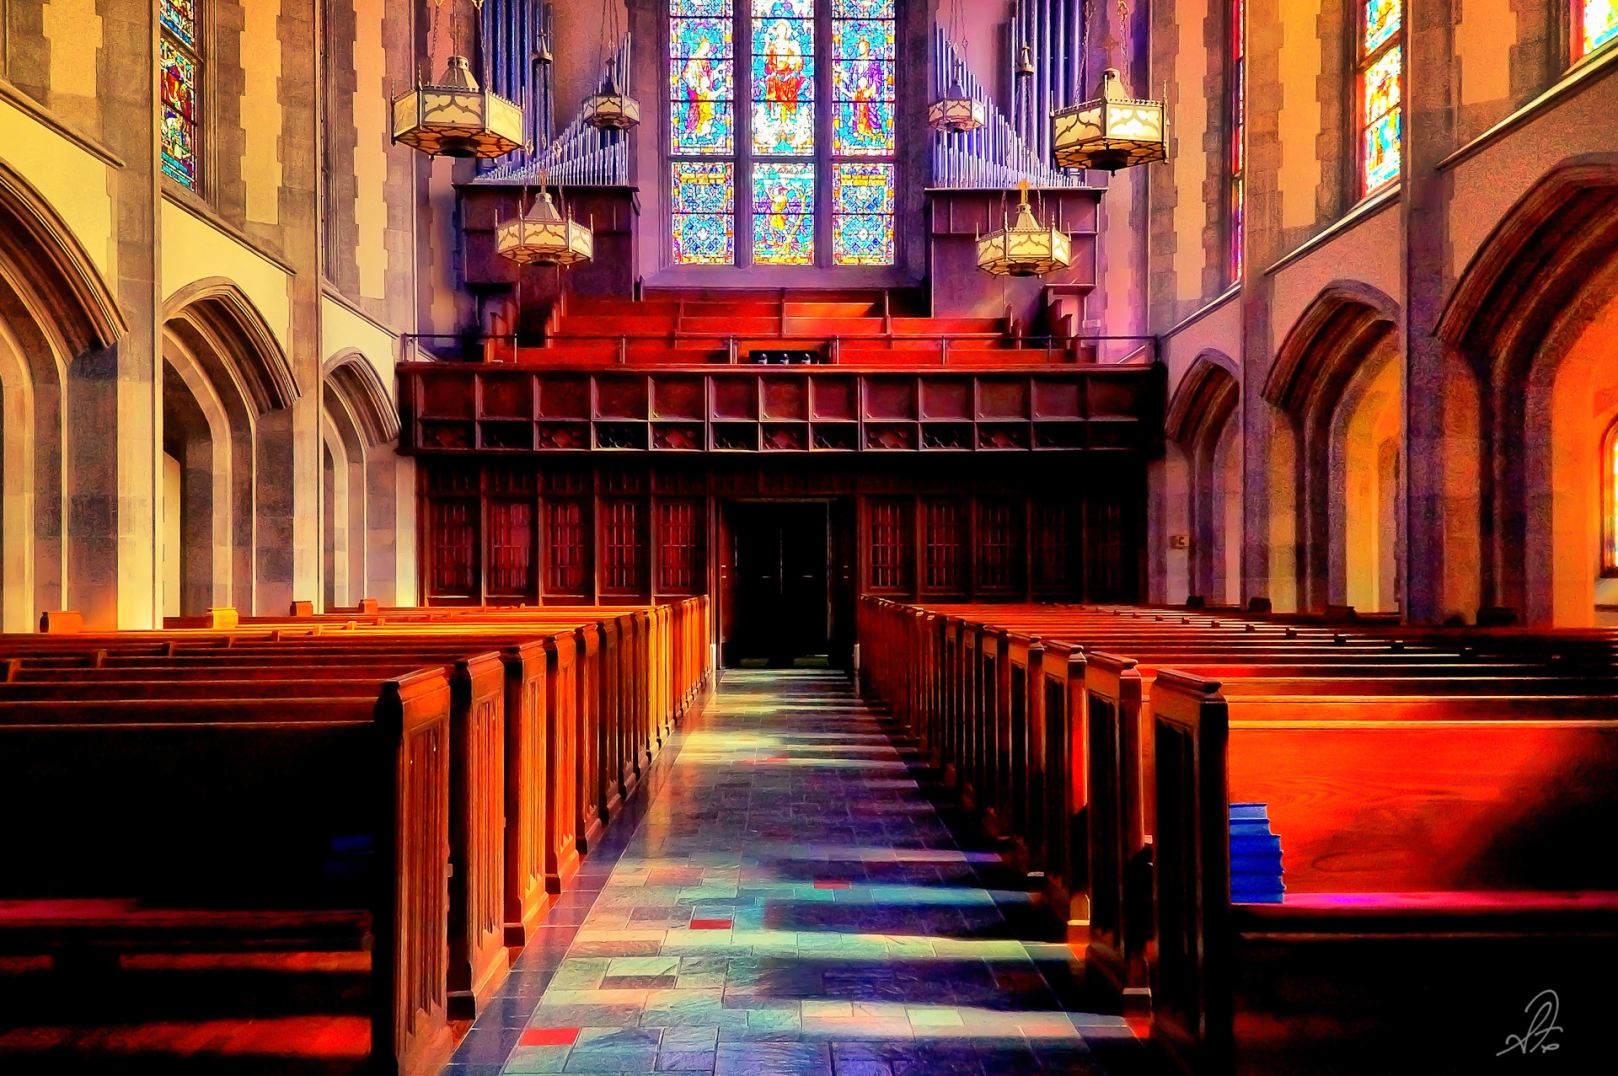 The inside of the main sanctuary of Independent Presbyterian Church in Birmingham AL